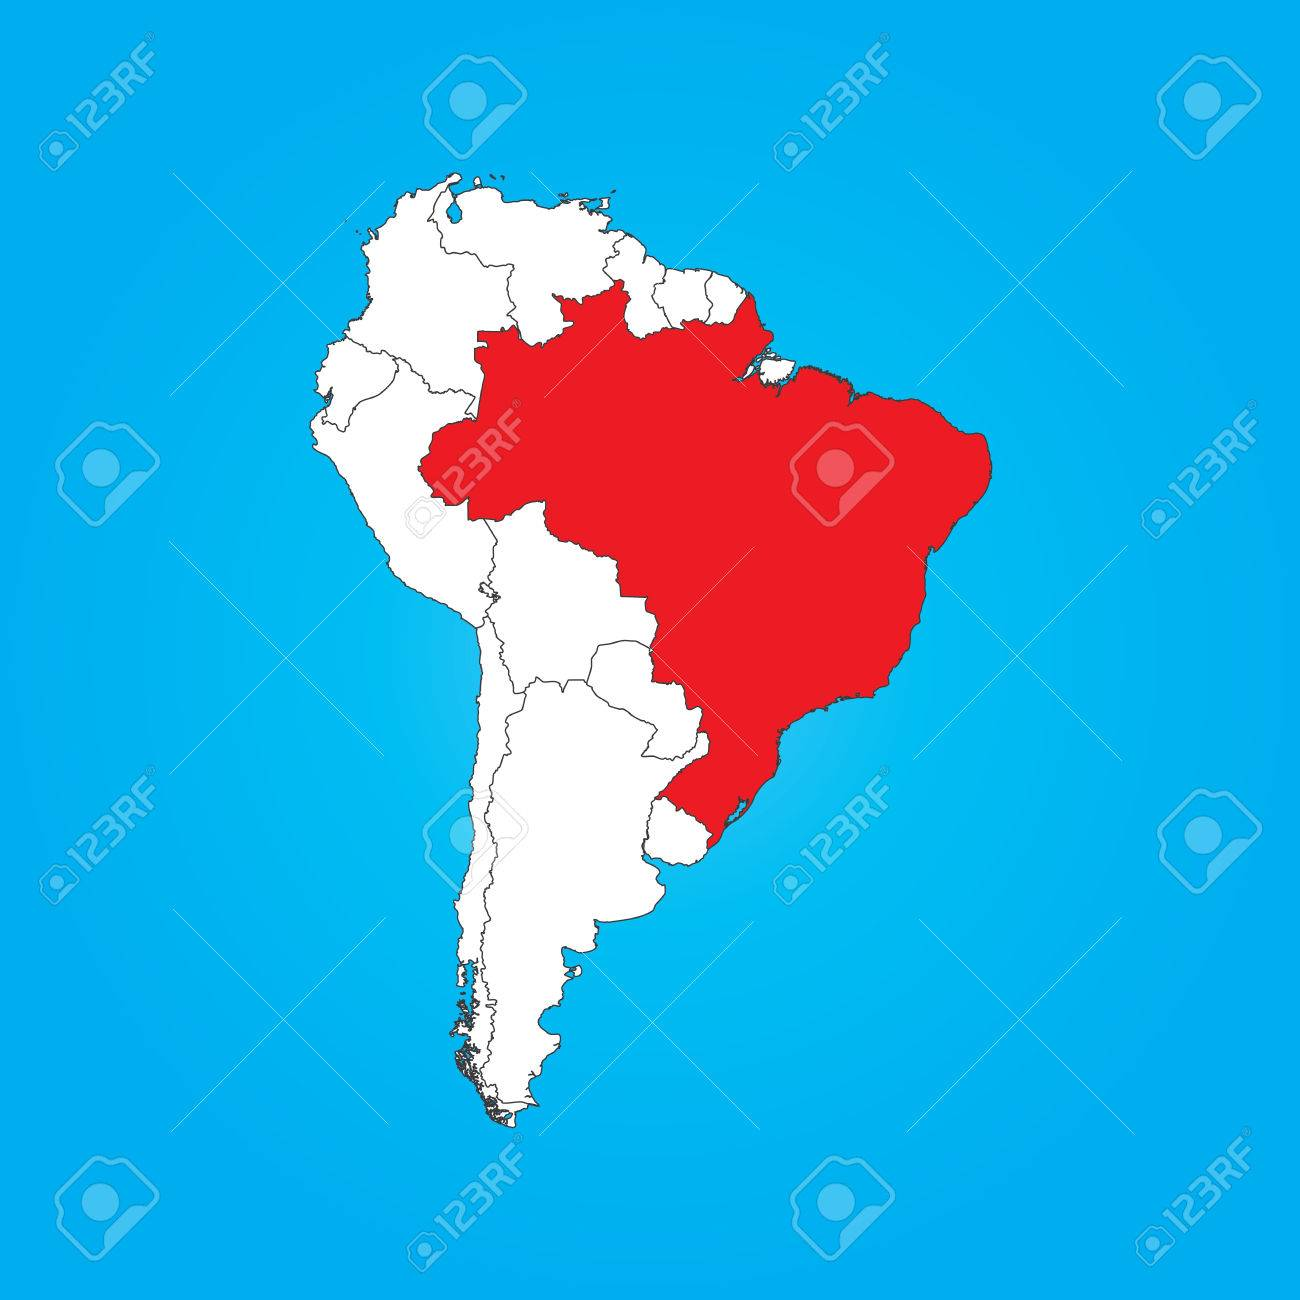 A Map Of South America With A Selected Country Of Brazil Royalty